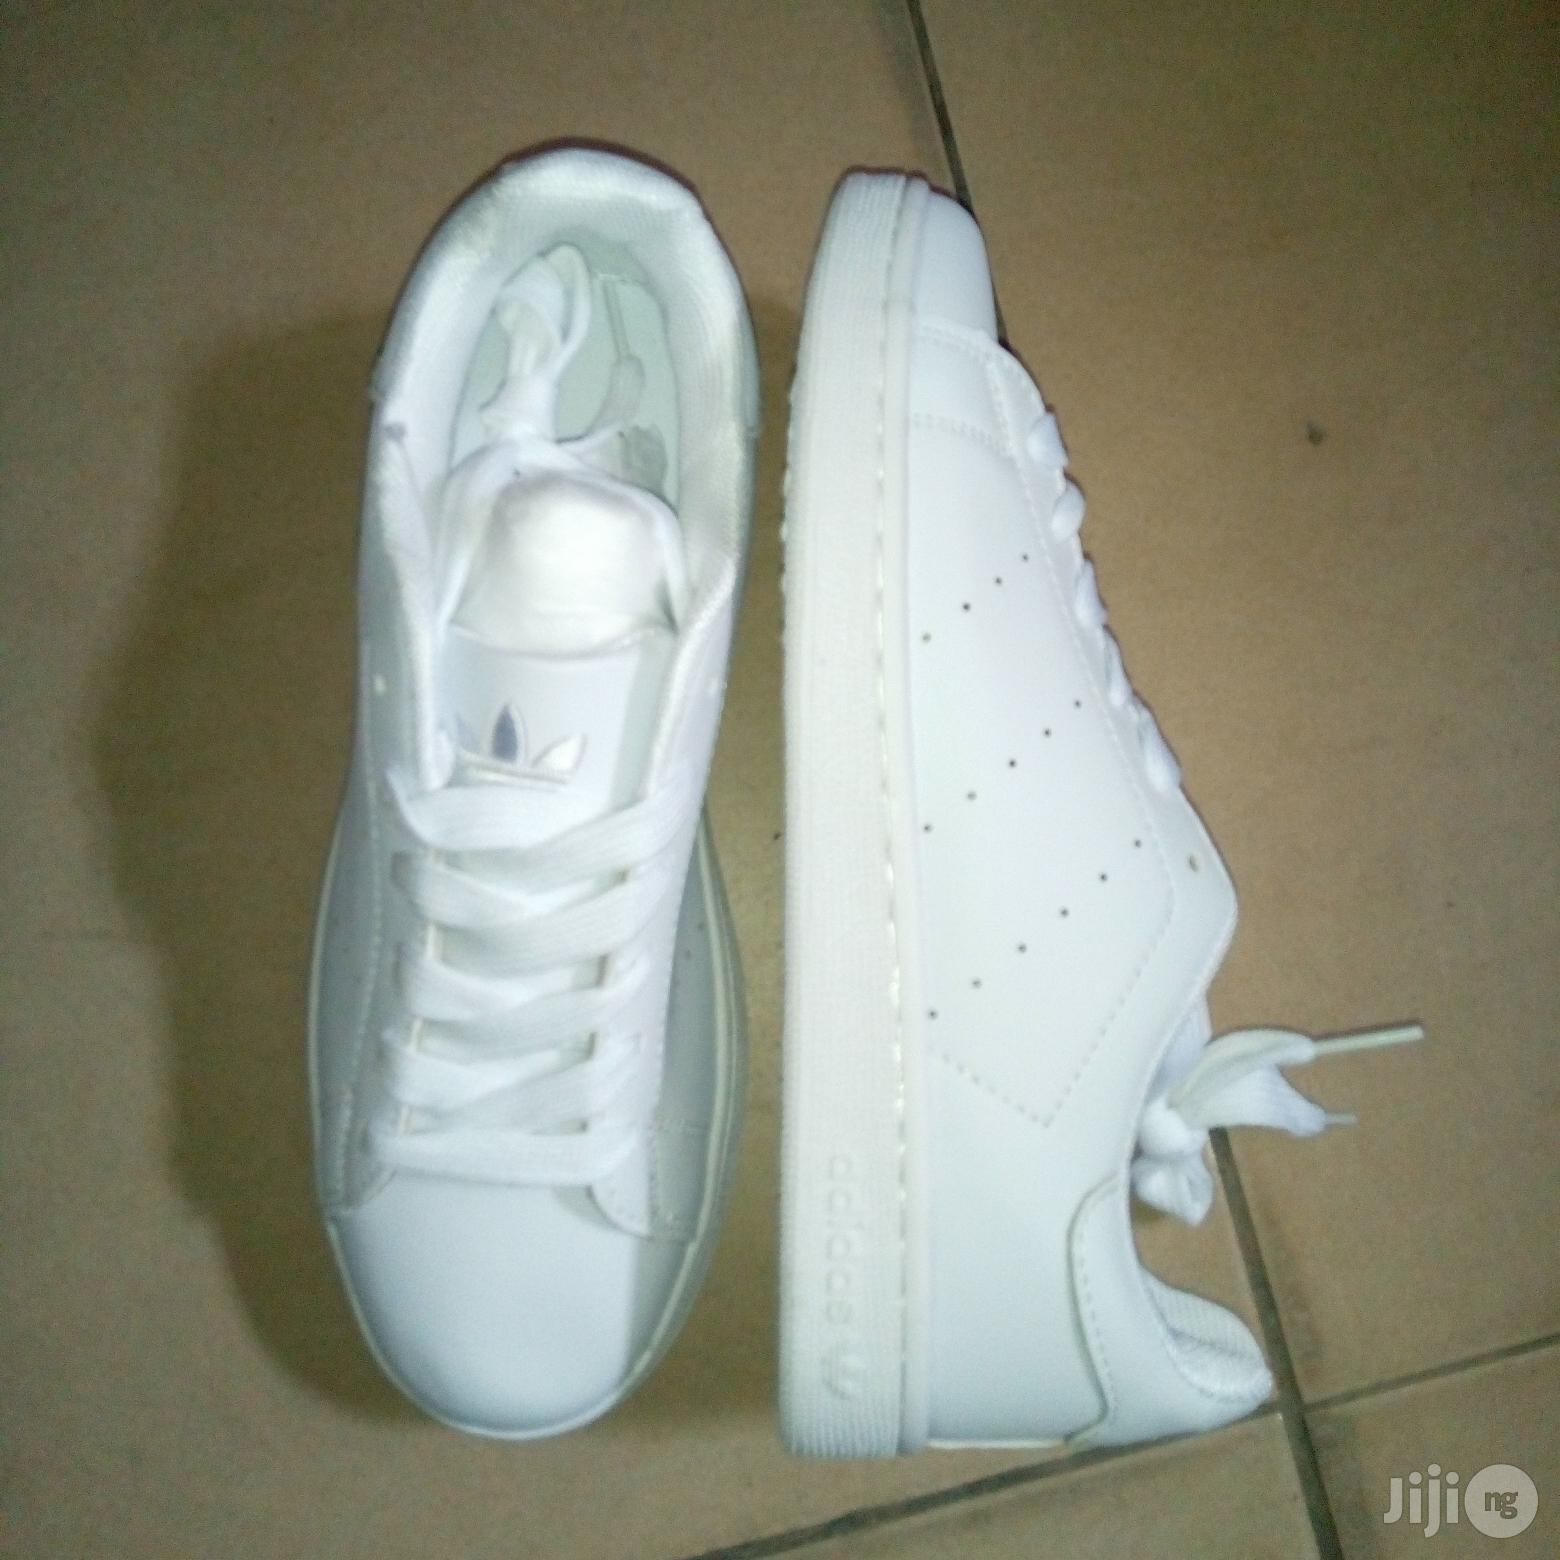 Adidas Canvas for Kids (Unisex)